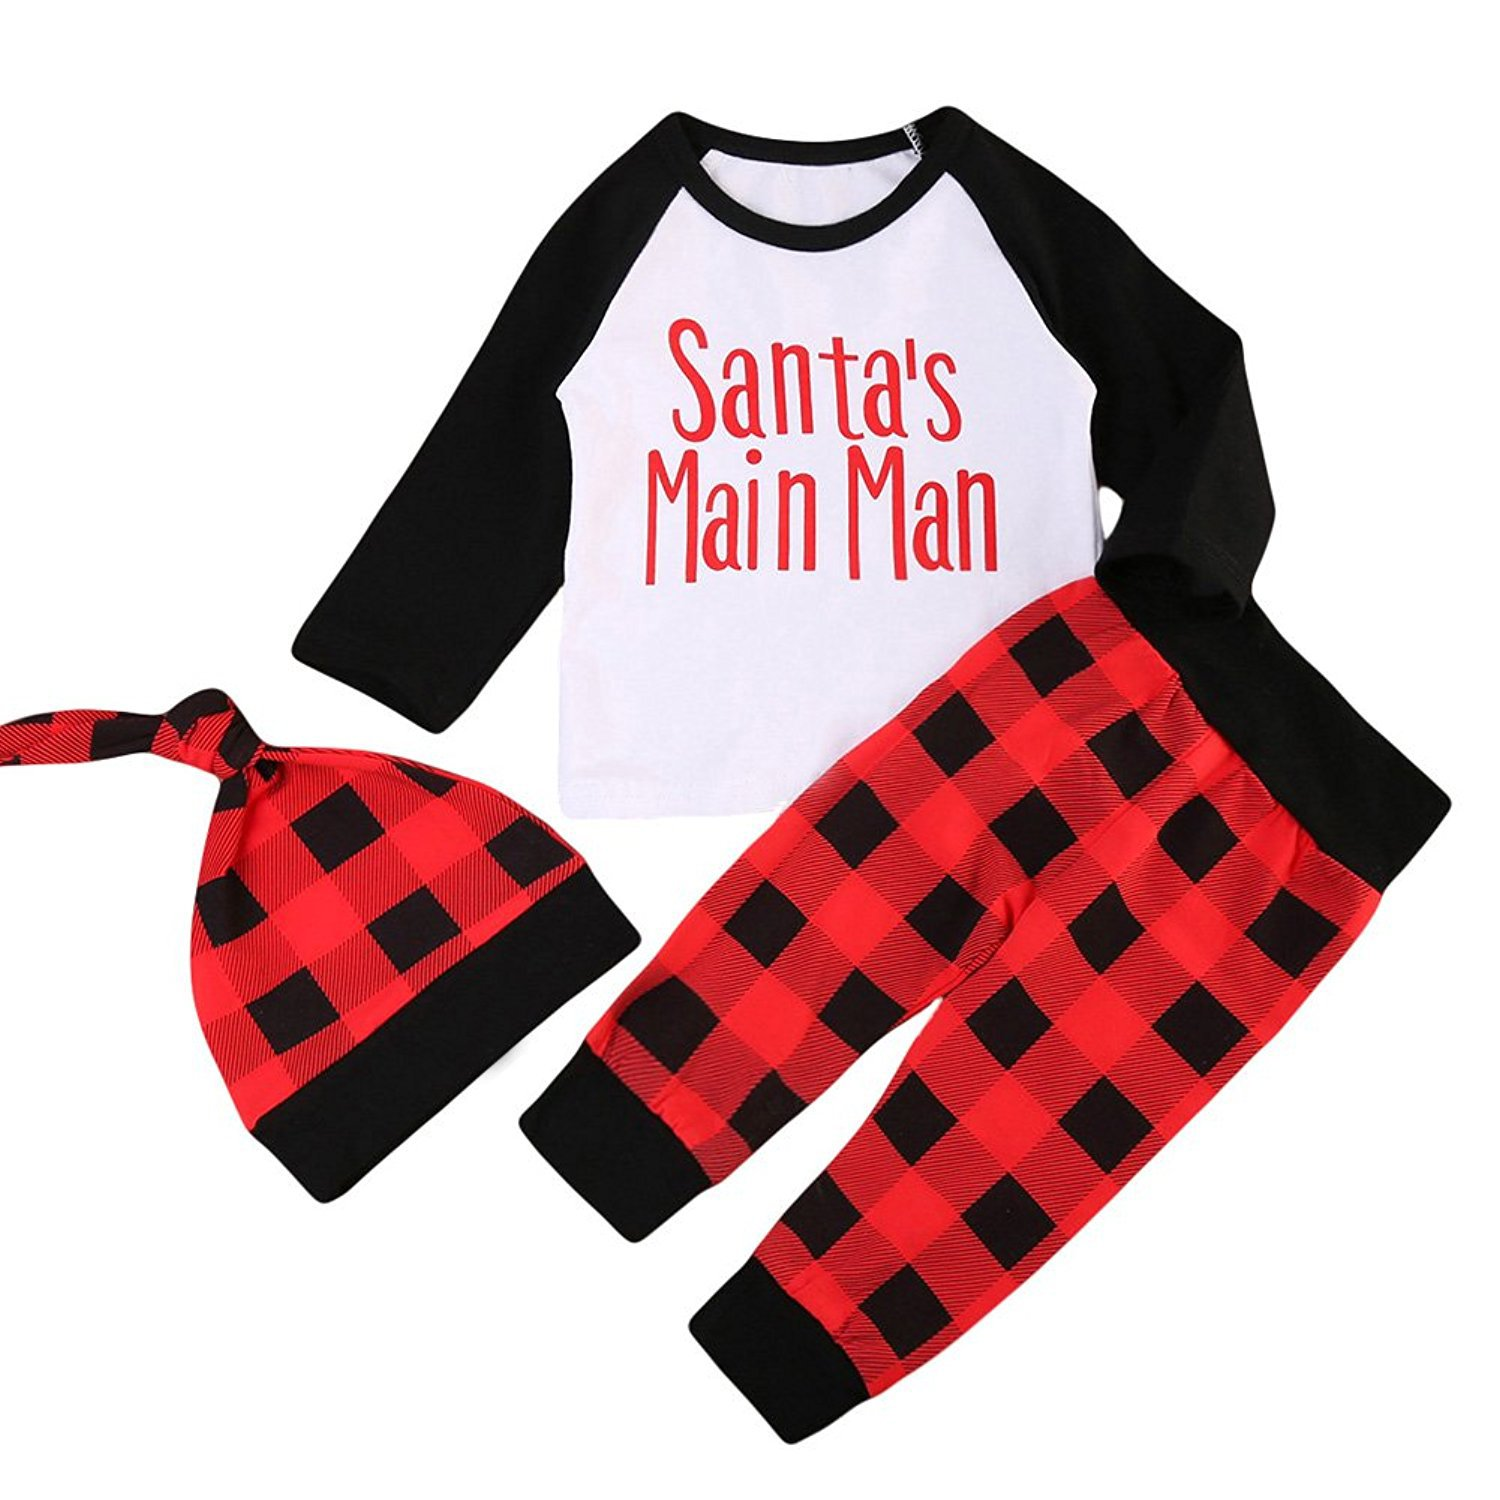 79b2d93a1 Superior in material and excellent in workmanship. This outfit quality  totally beat the price! ????Red plaid style pants make your little baby  looks more ...